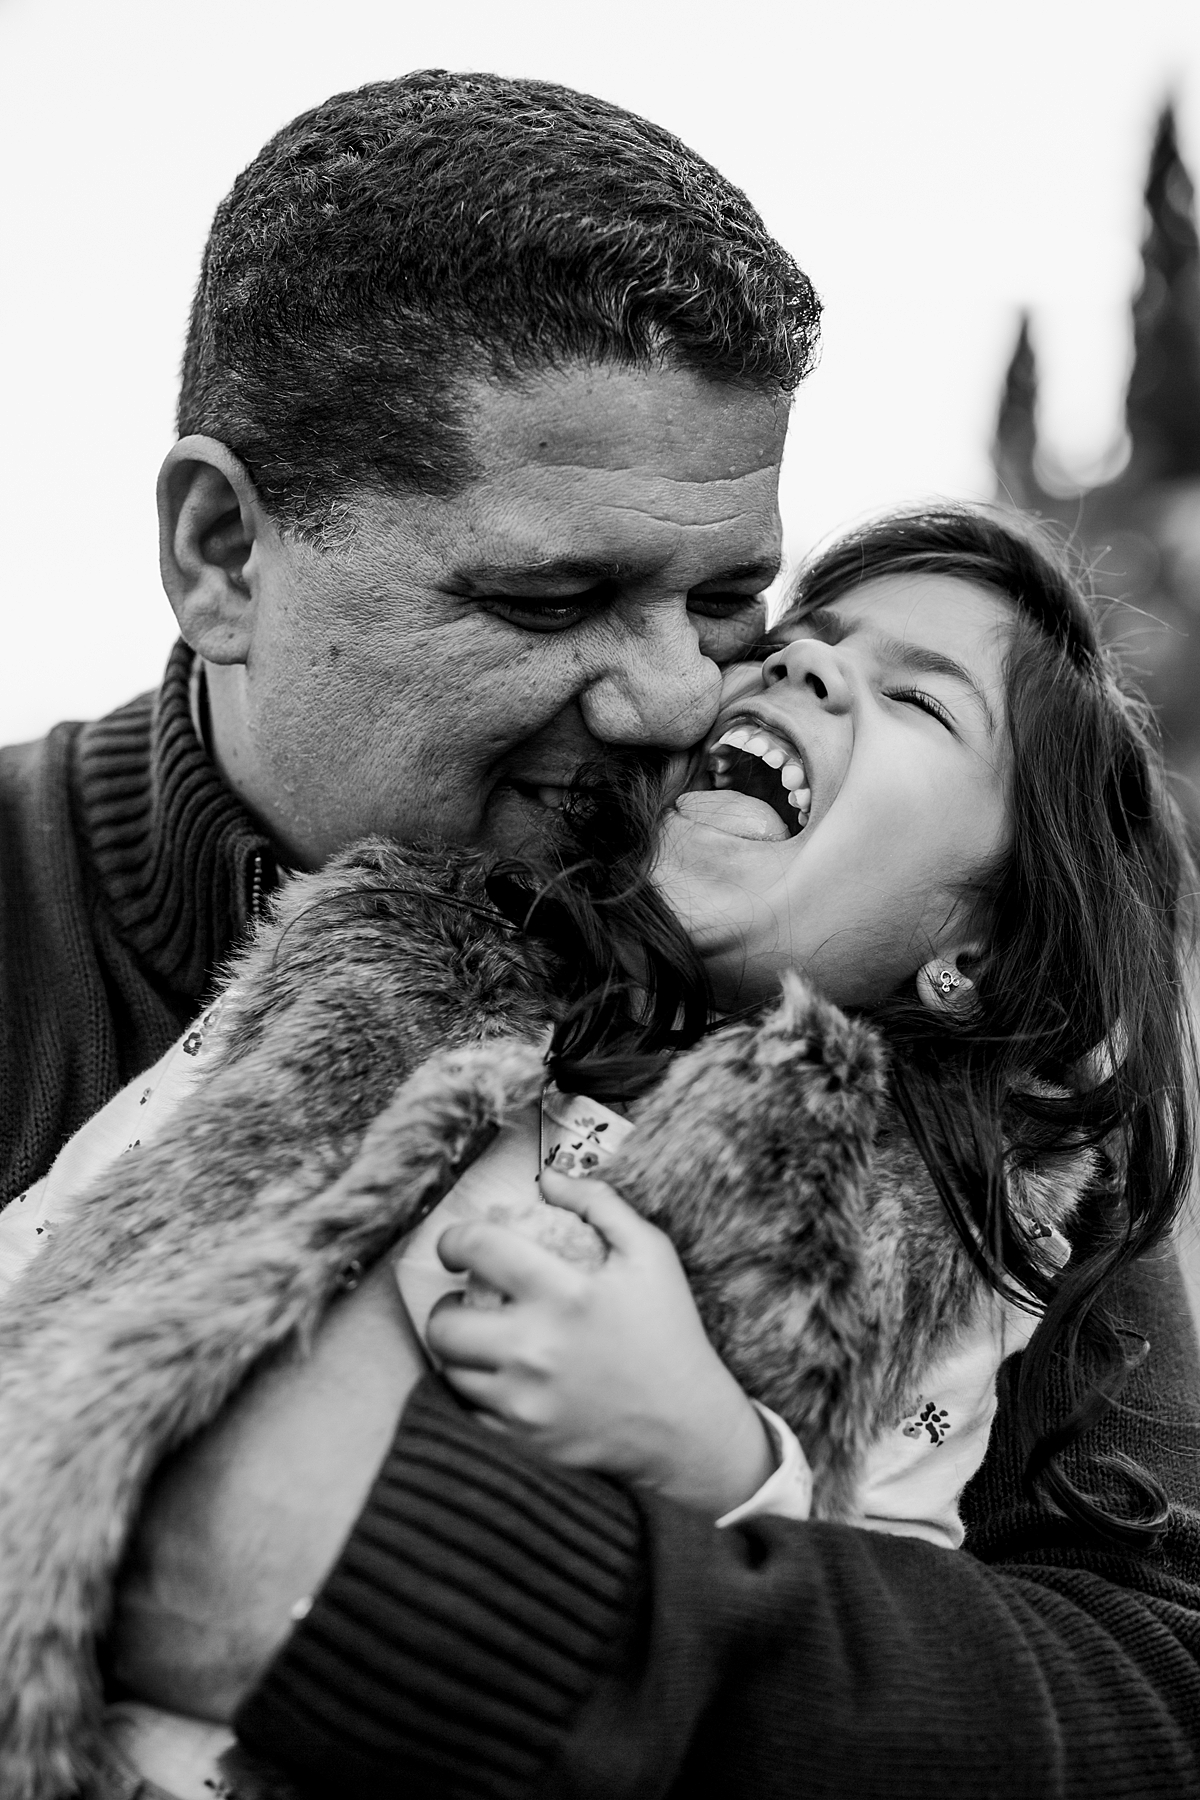 Orange County family photographer. Candid photo of dad tickling daughter and daughter laughing pretty hard during outdoor family photo shoot in orange county